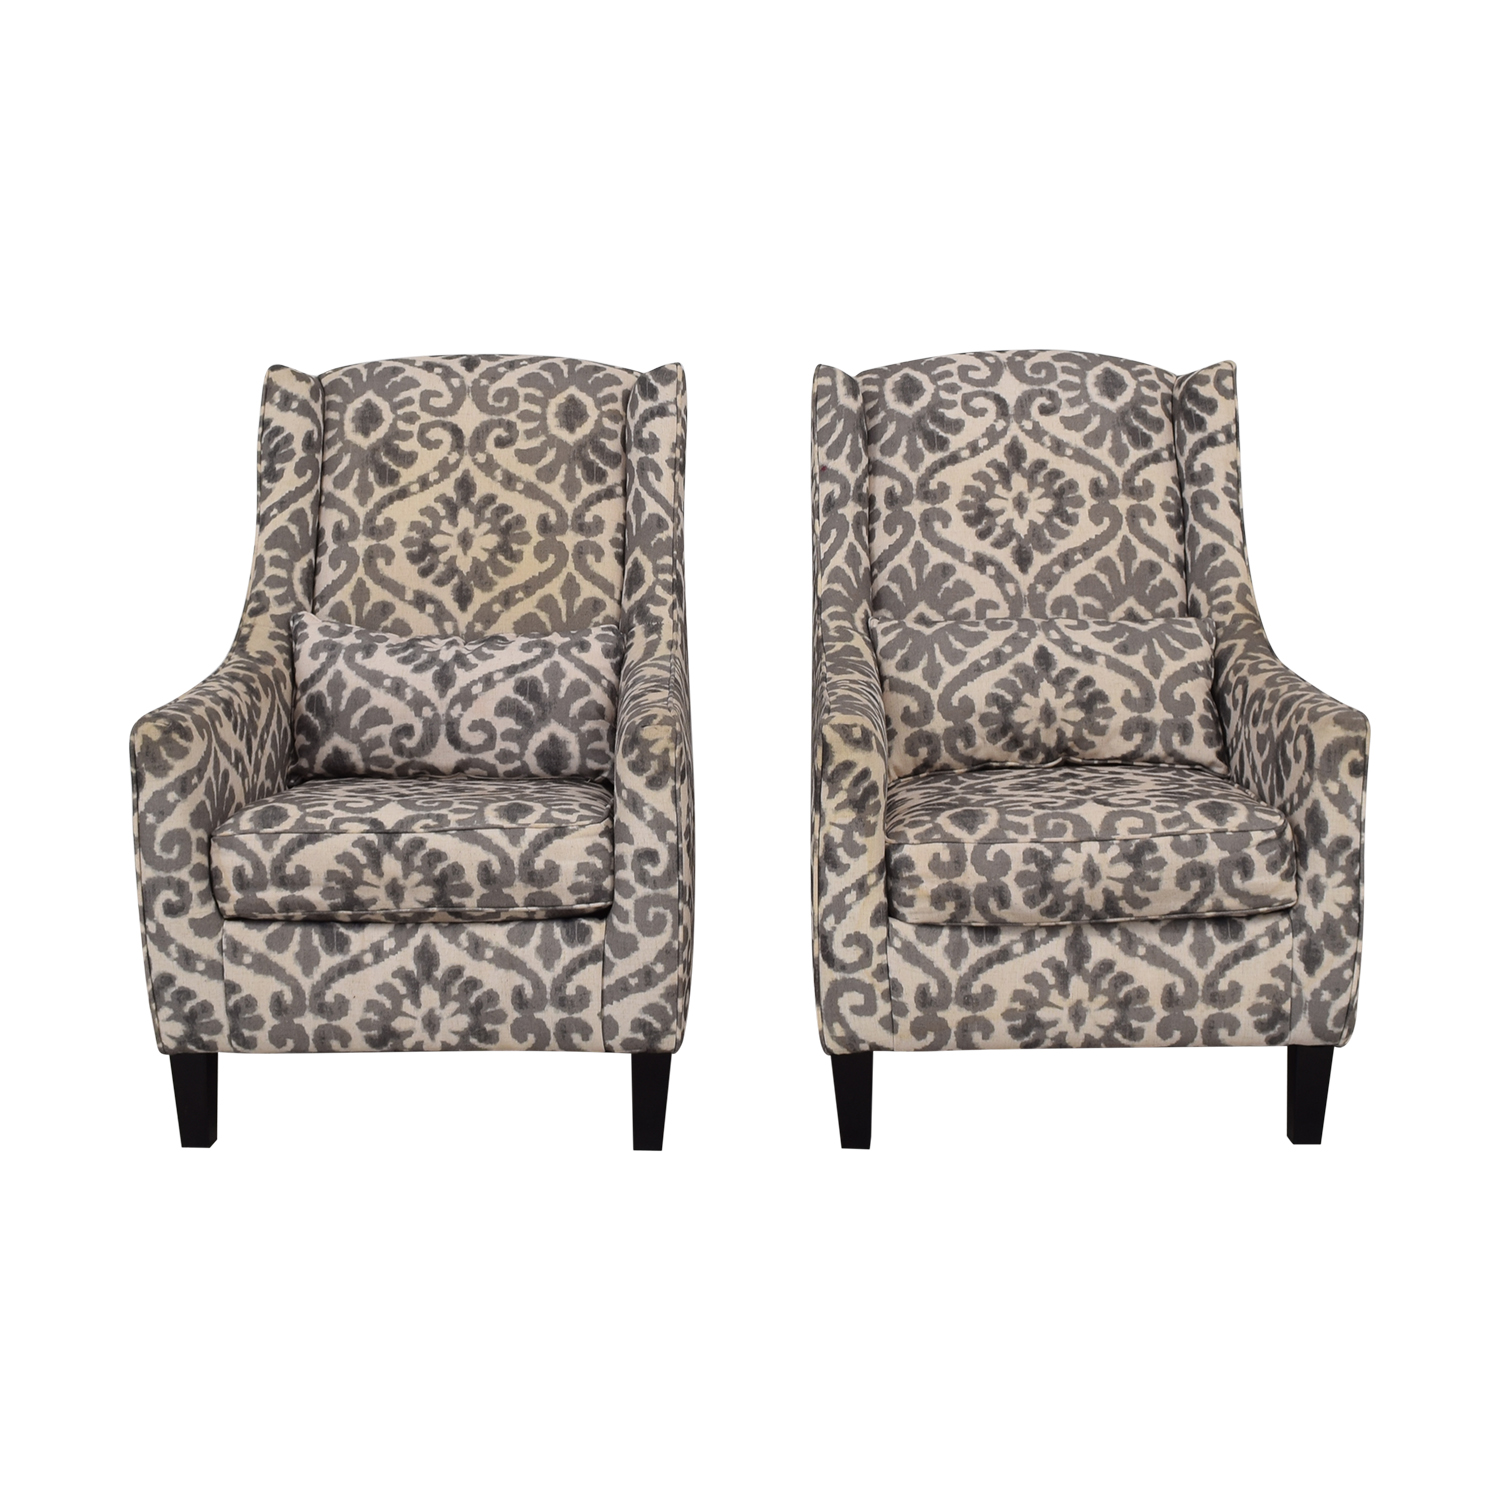 Ashley Chairs 87 Off Ashley Furniture Ashley Furniture Grey And White Accent Chairs Chairs